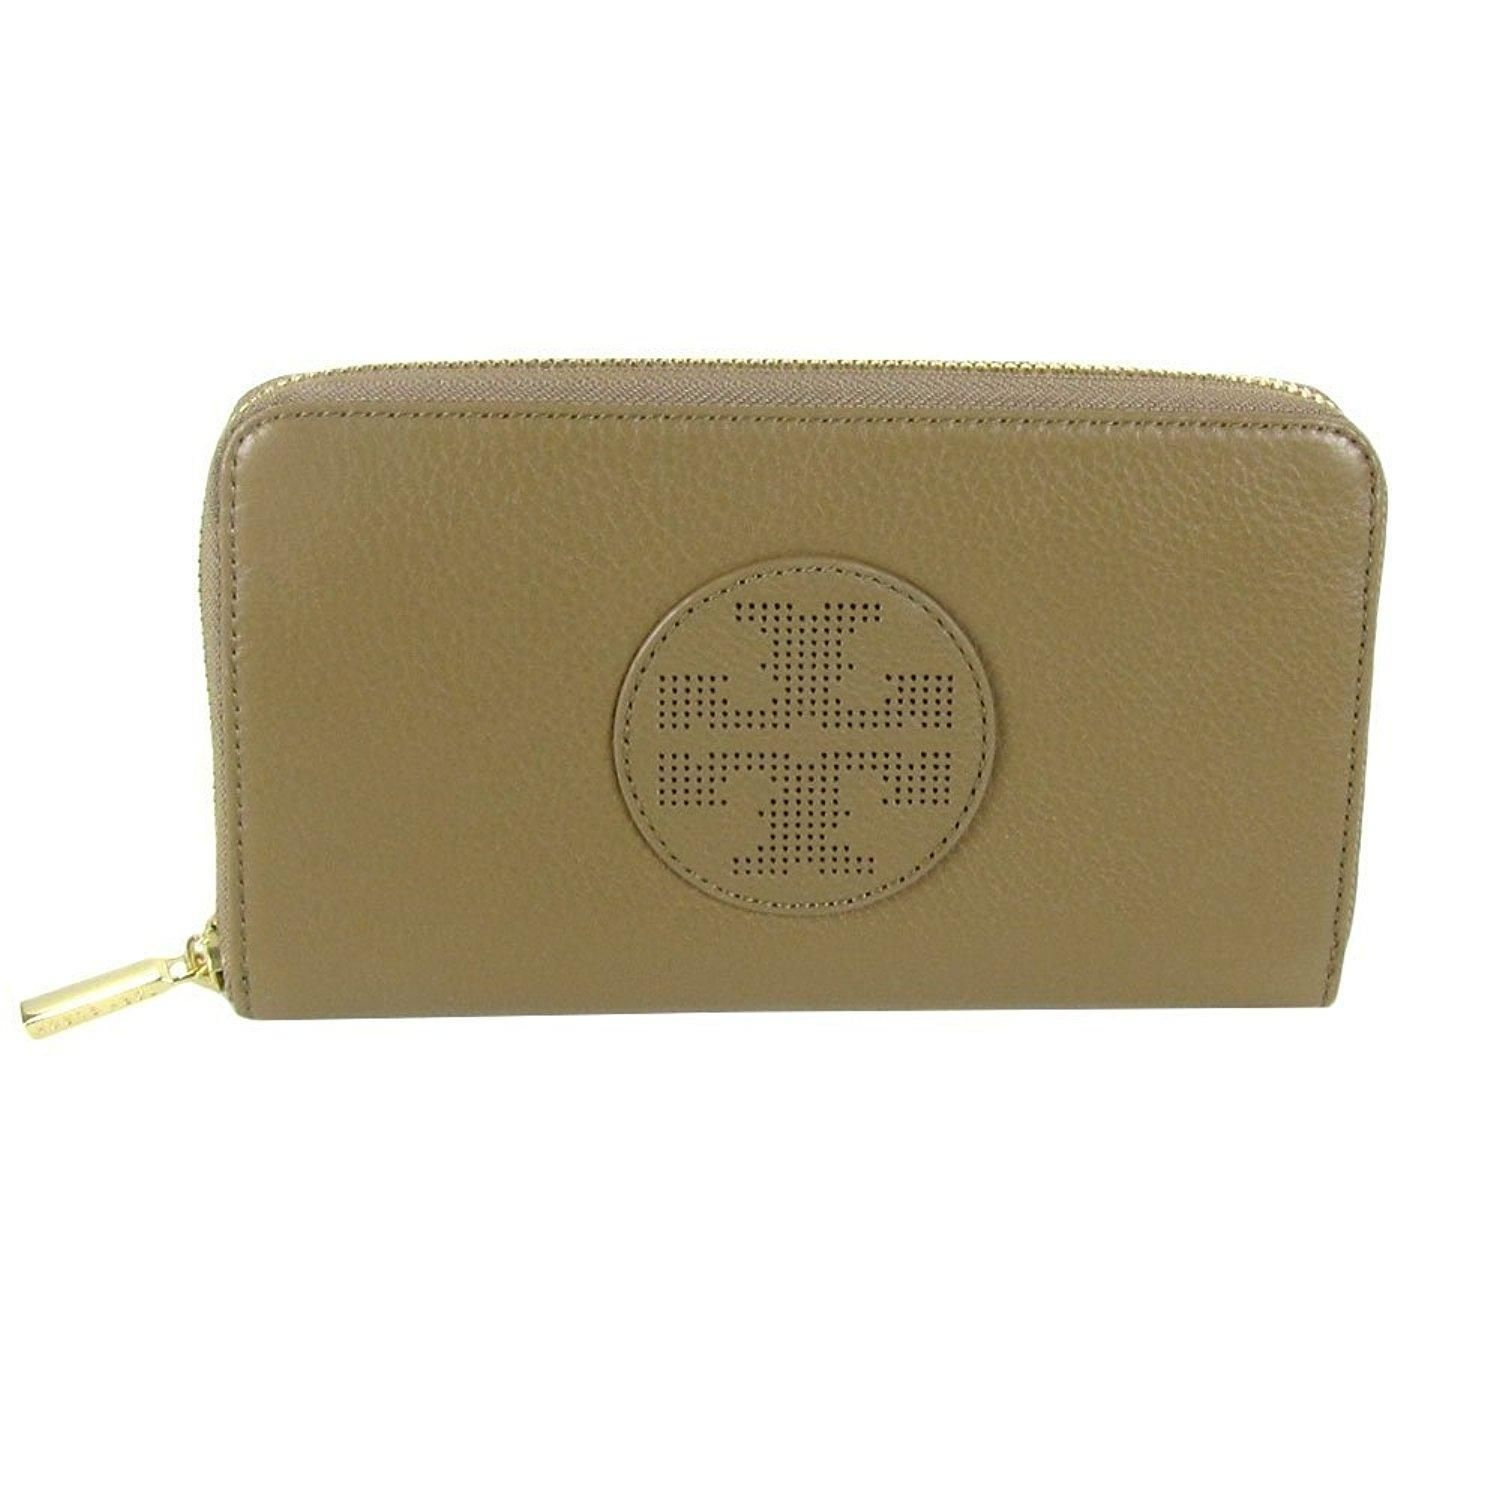 Tory Burch Kipp Zip Continental Clutch Wallet Sand Dollar Leather. Free shipping and guaranteed authenticity on Tory Burch Kipp Zip Continental Clutch Wallet Sand Dollar Leather at Tradesy. Tory Burch Kipp Zip Continental Clutch Wallet Sand...